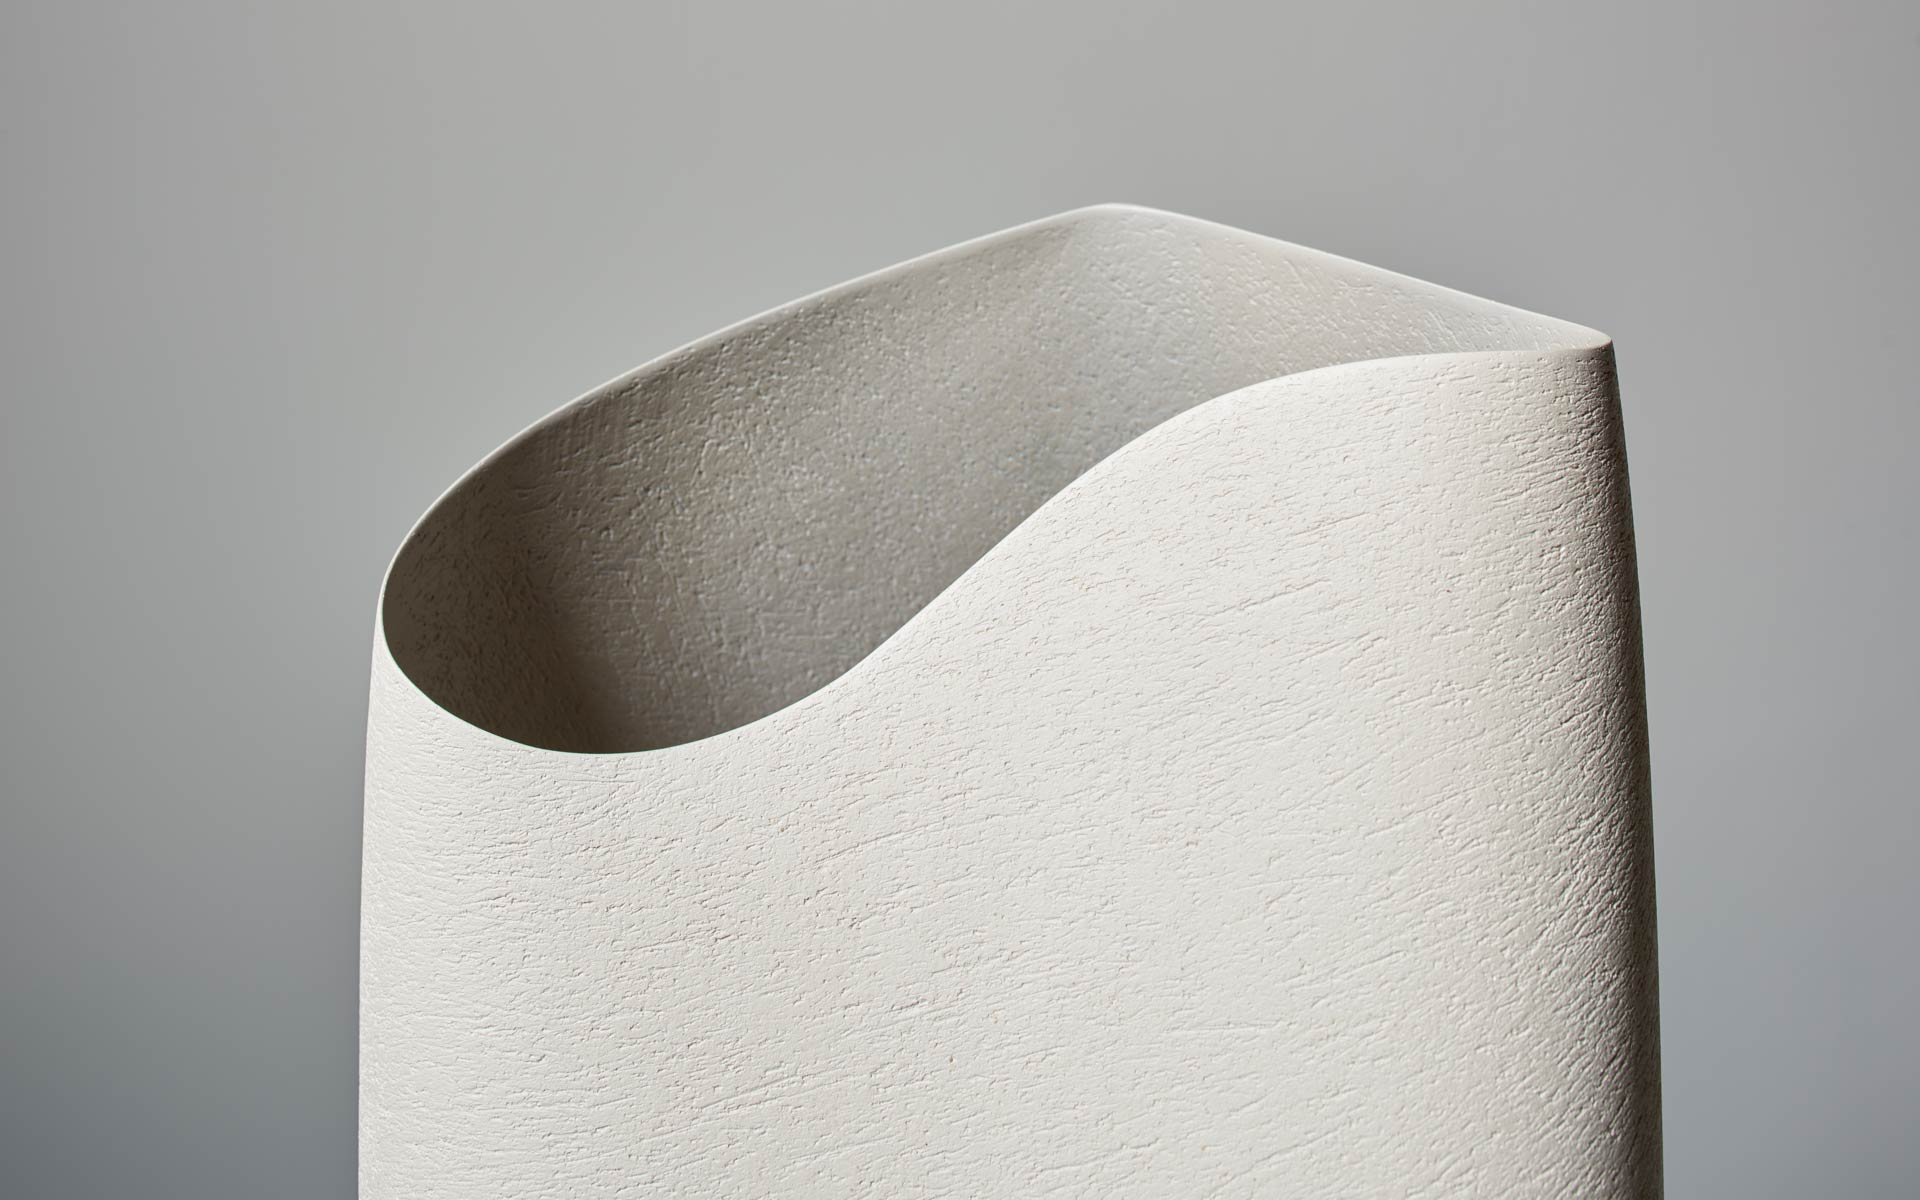 Grey Vessel - Detail